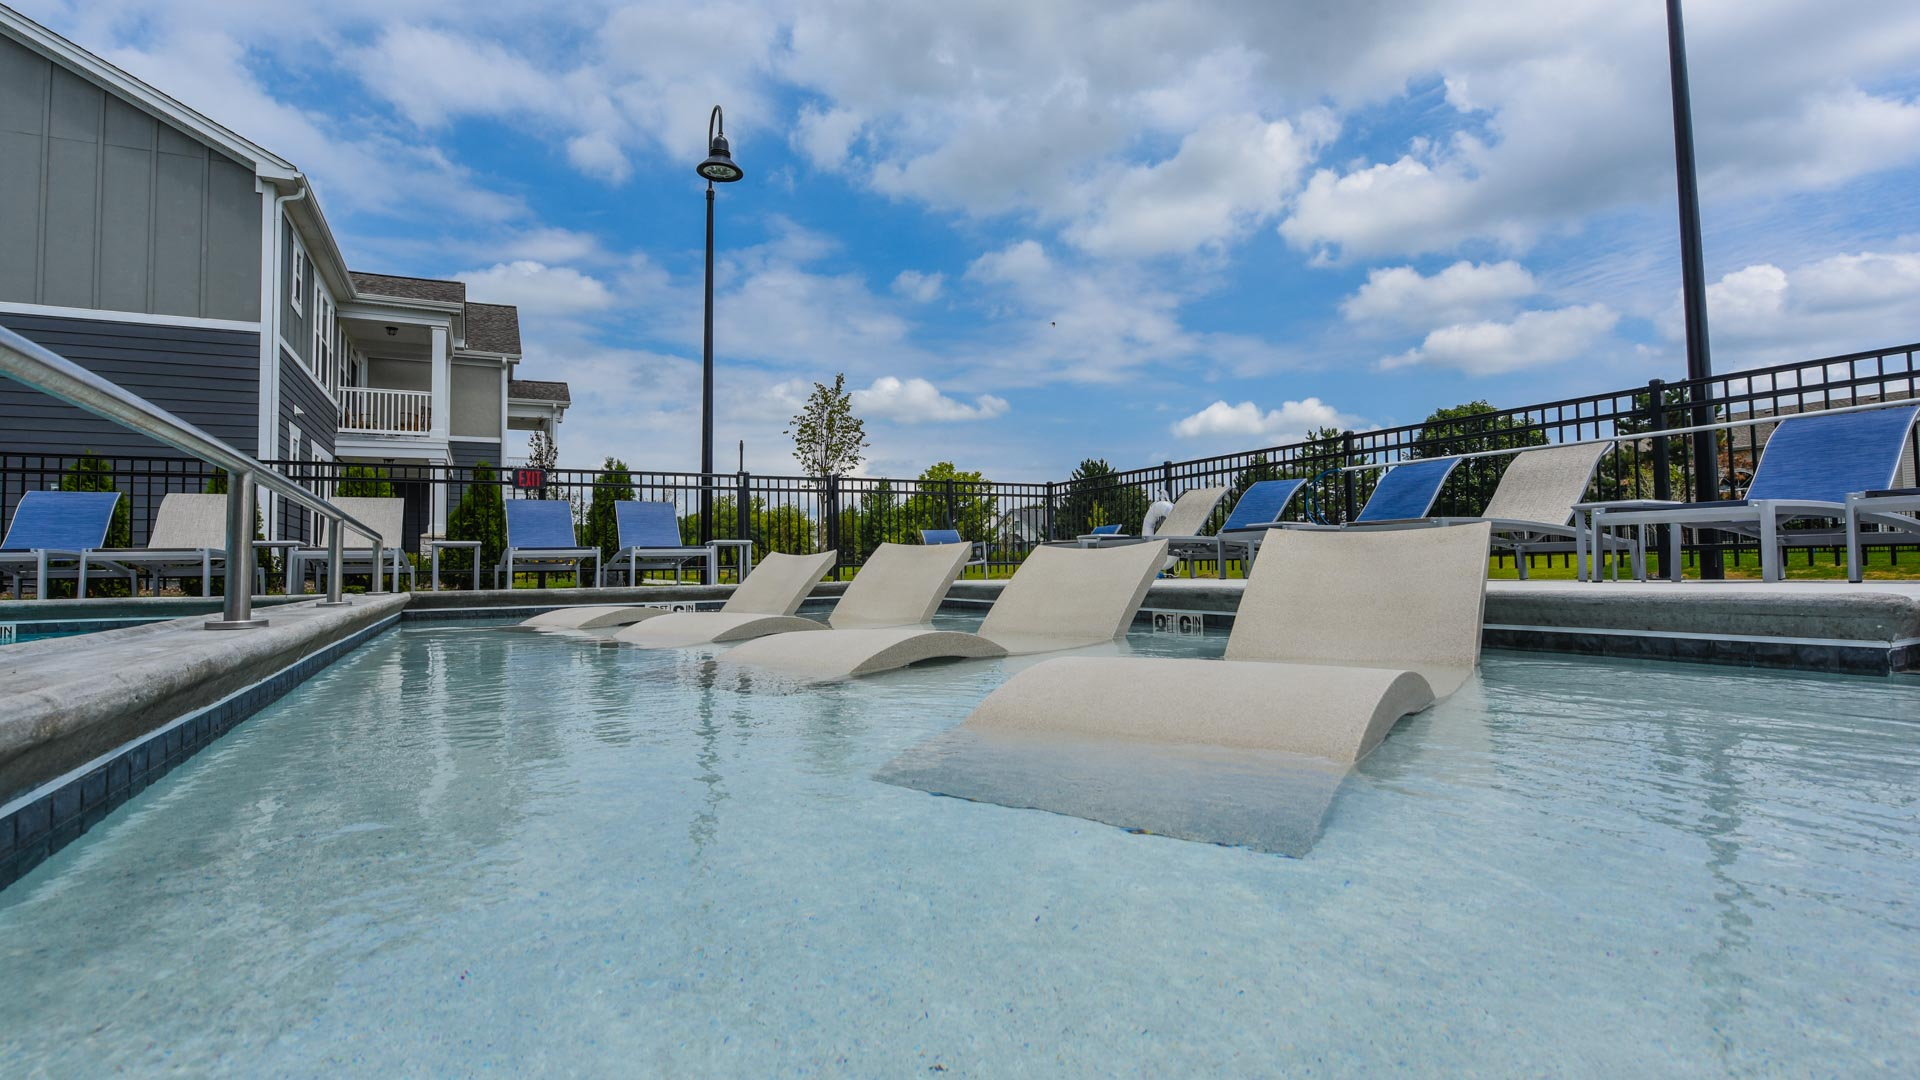 Lounge Chairs in the Pool at Springs at Orchard Road in North Aurora, IL